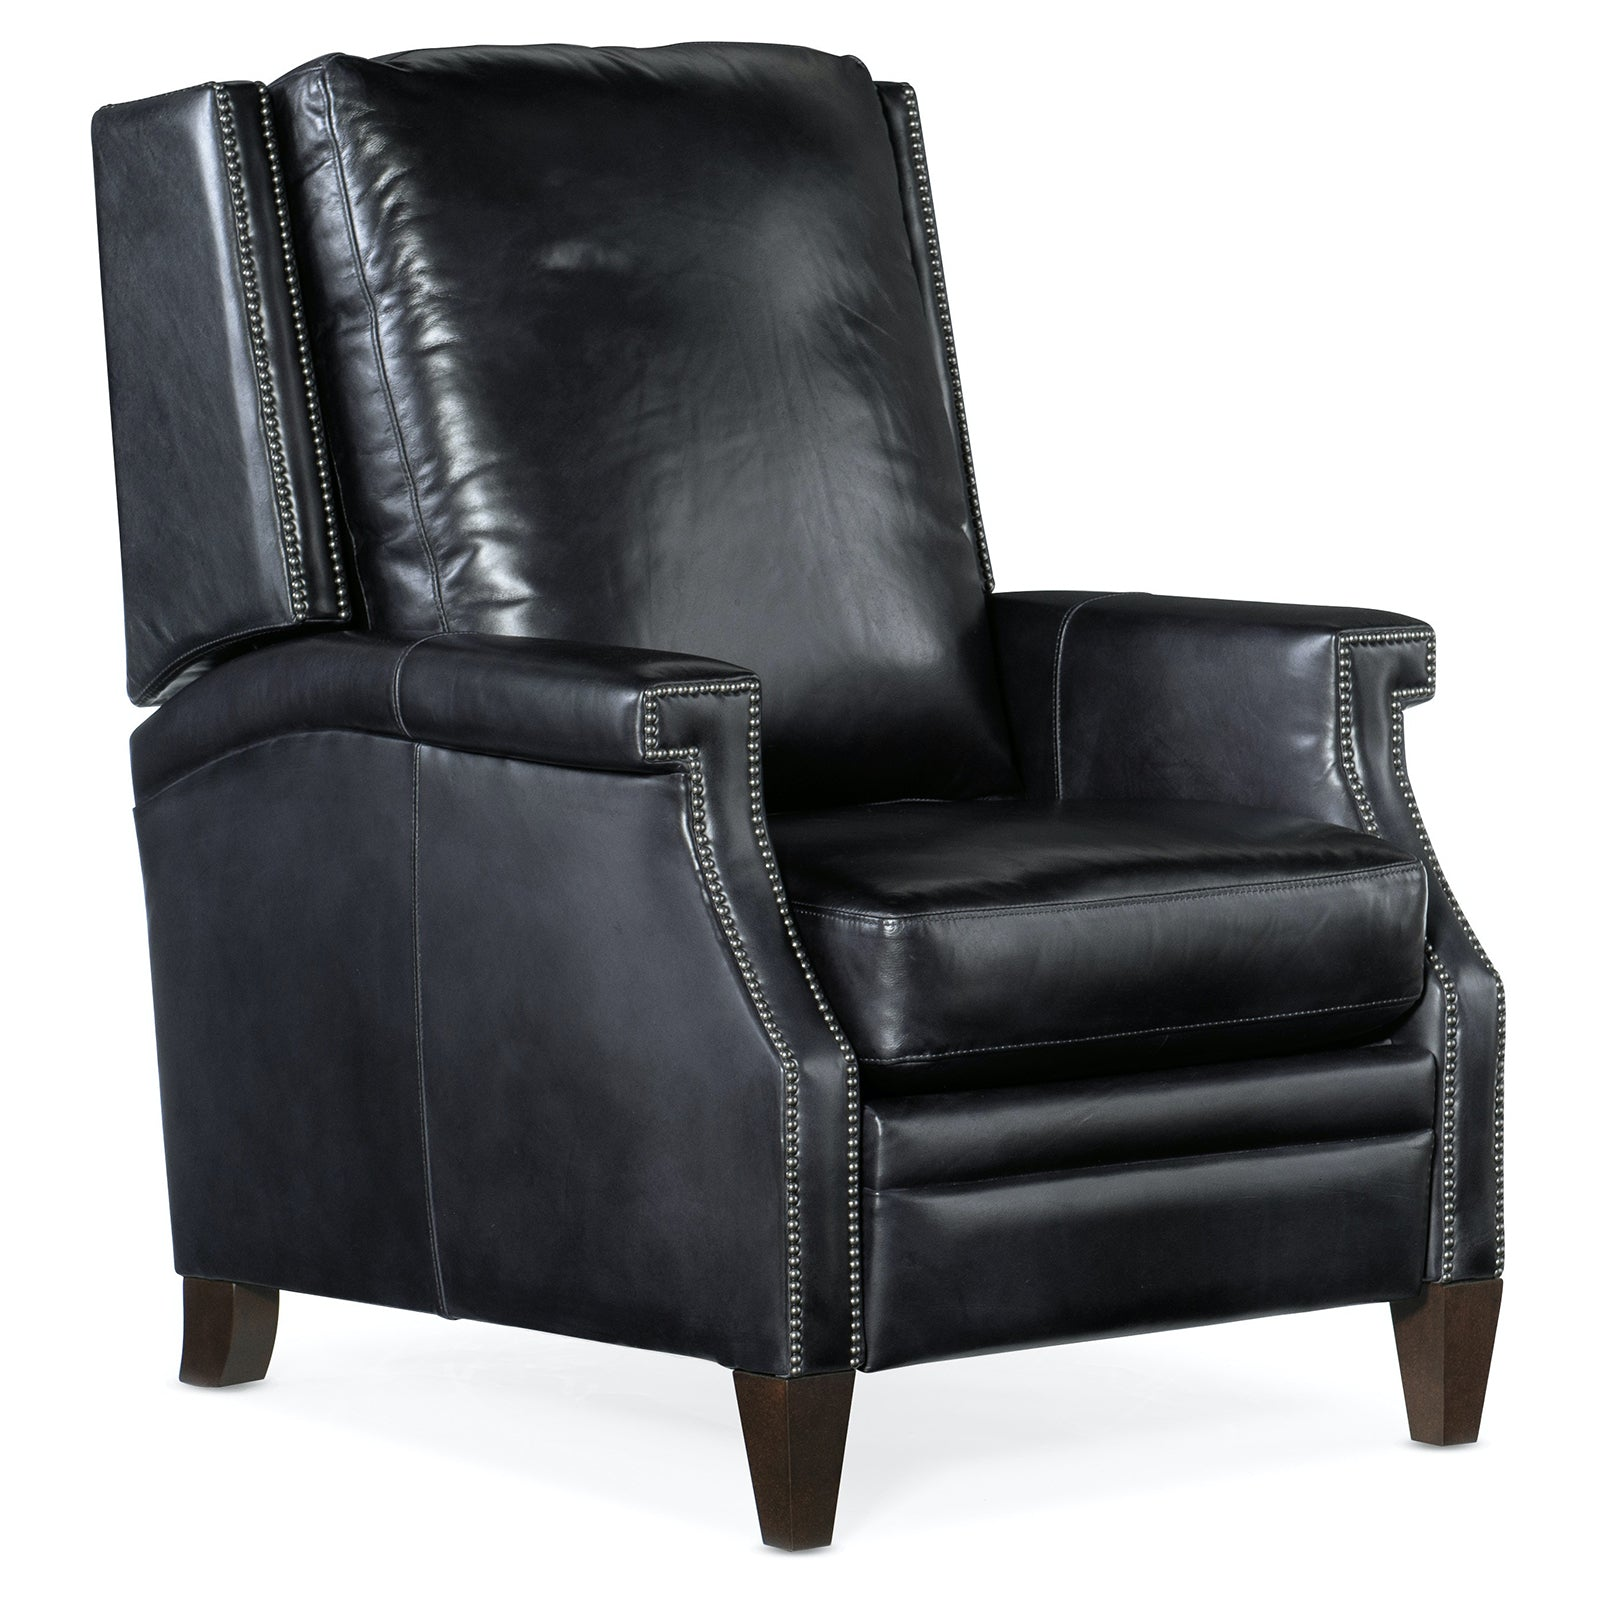 Cullen Leather Recliner